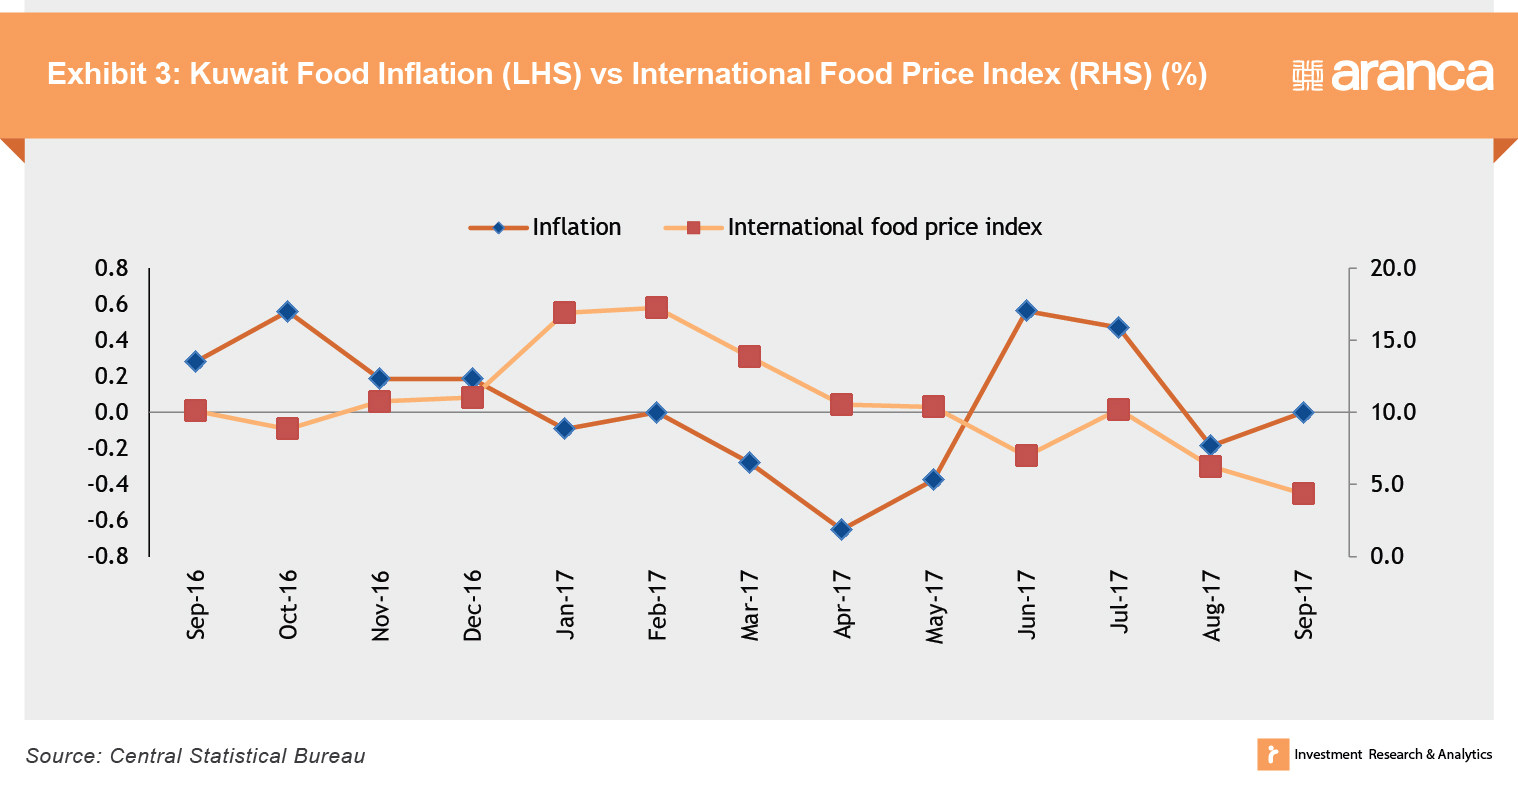 Kuwait Food Inflation vs. International Food Price Index